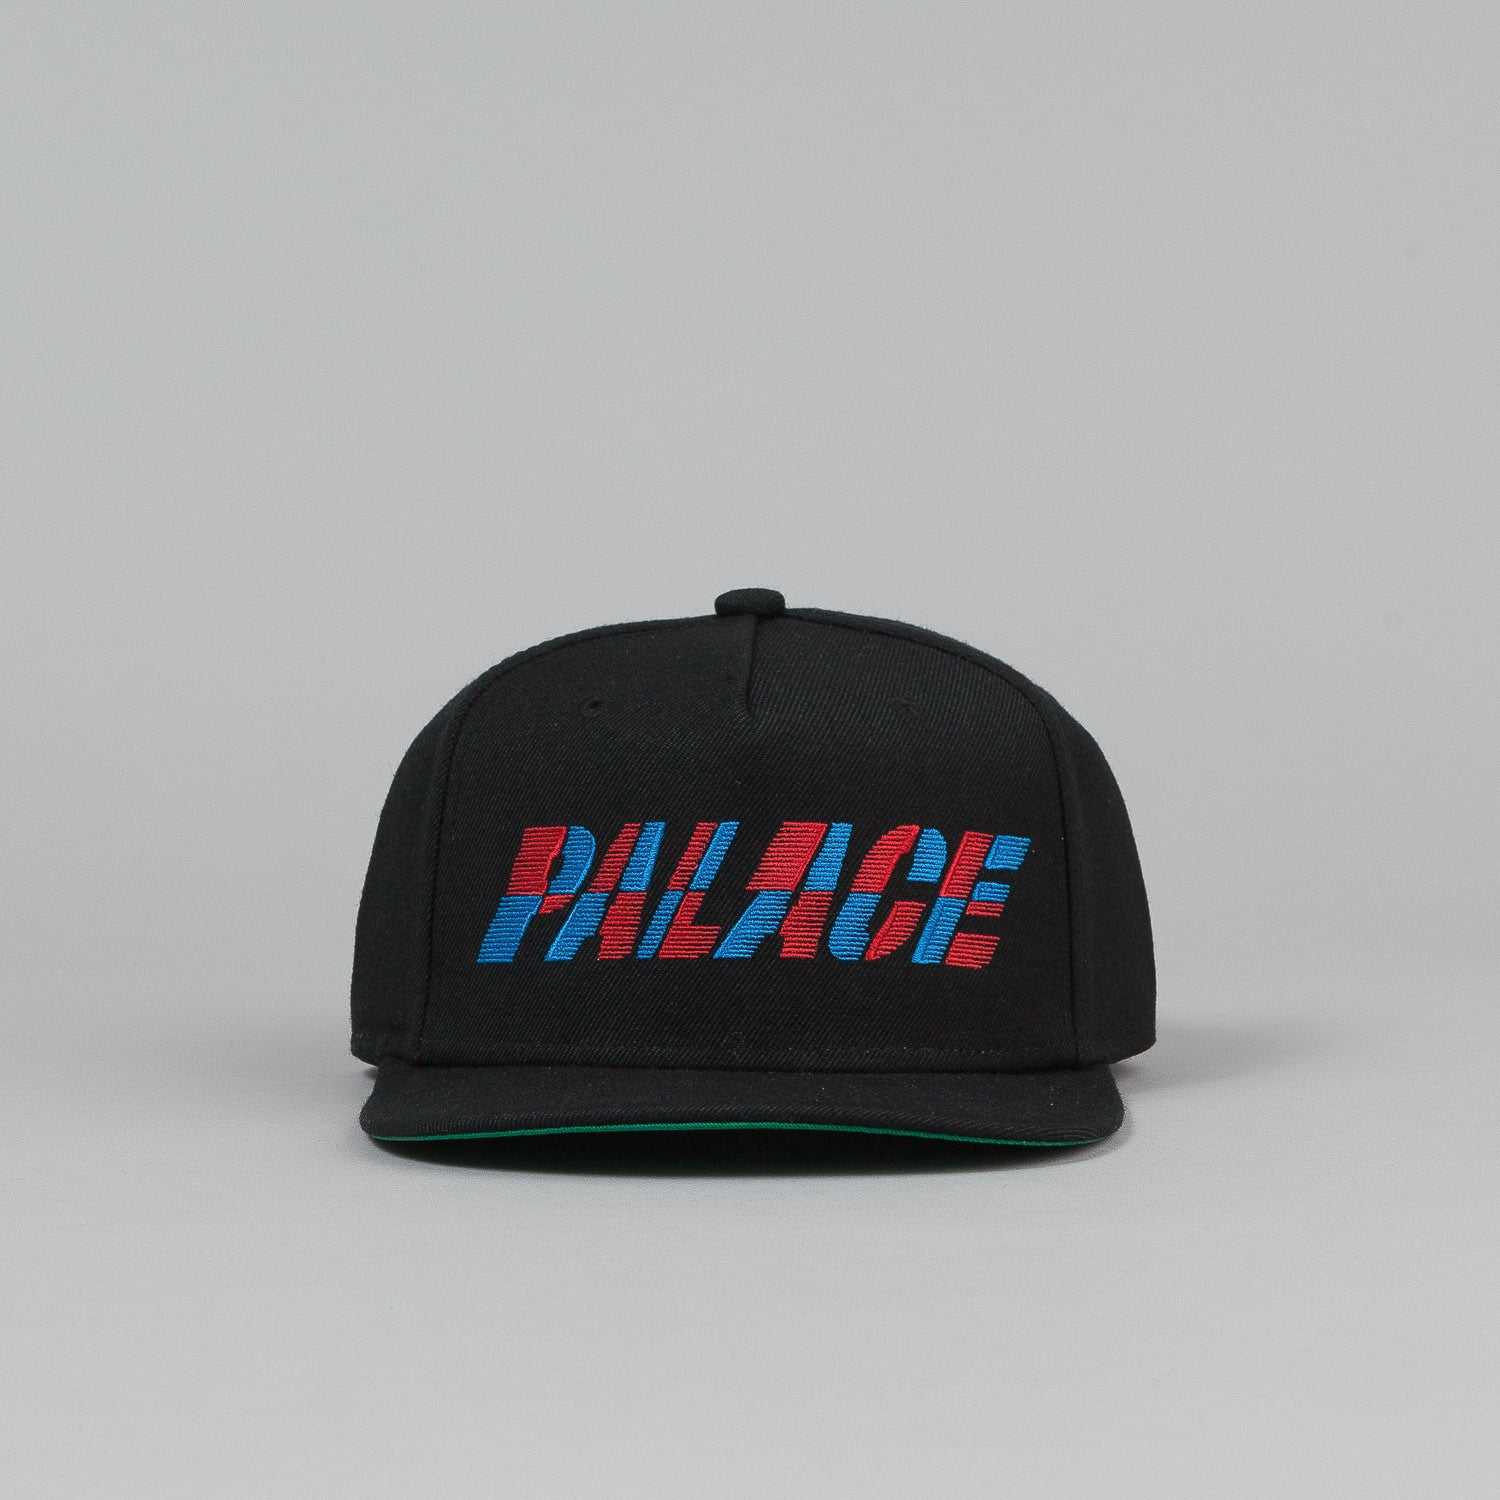 Palace One Tooth Snapback Cap - Black